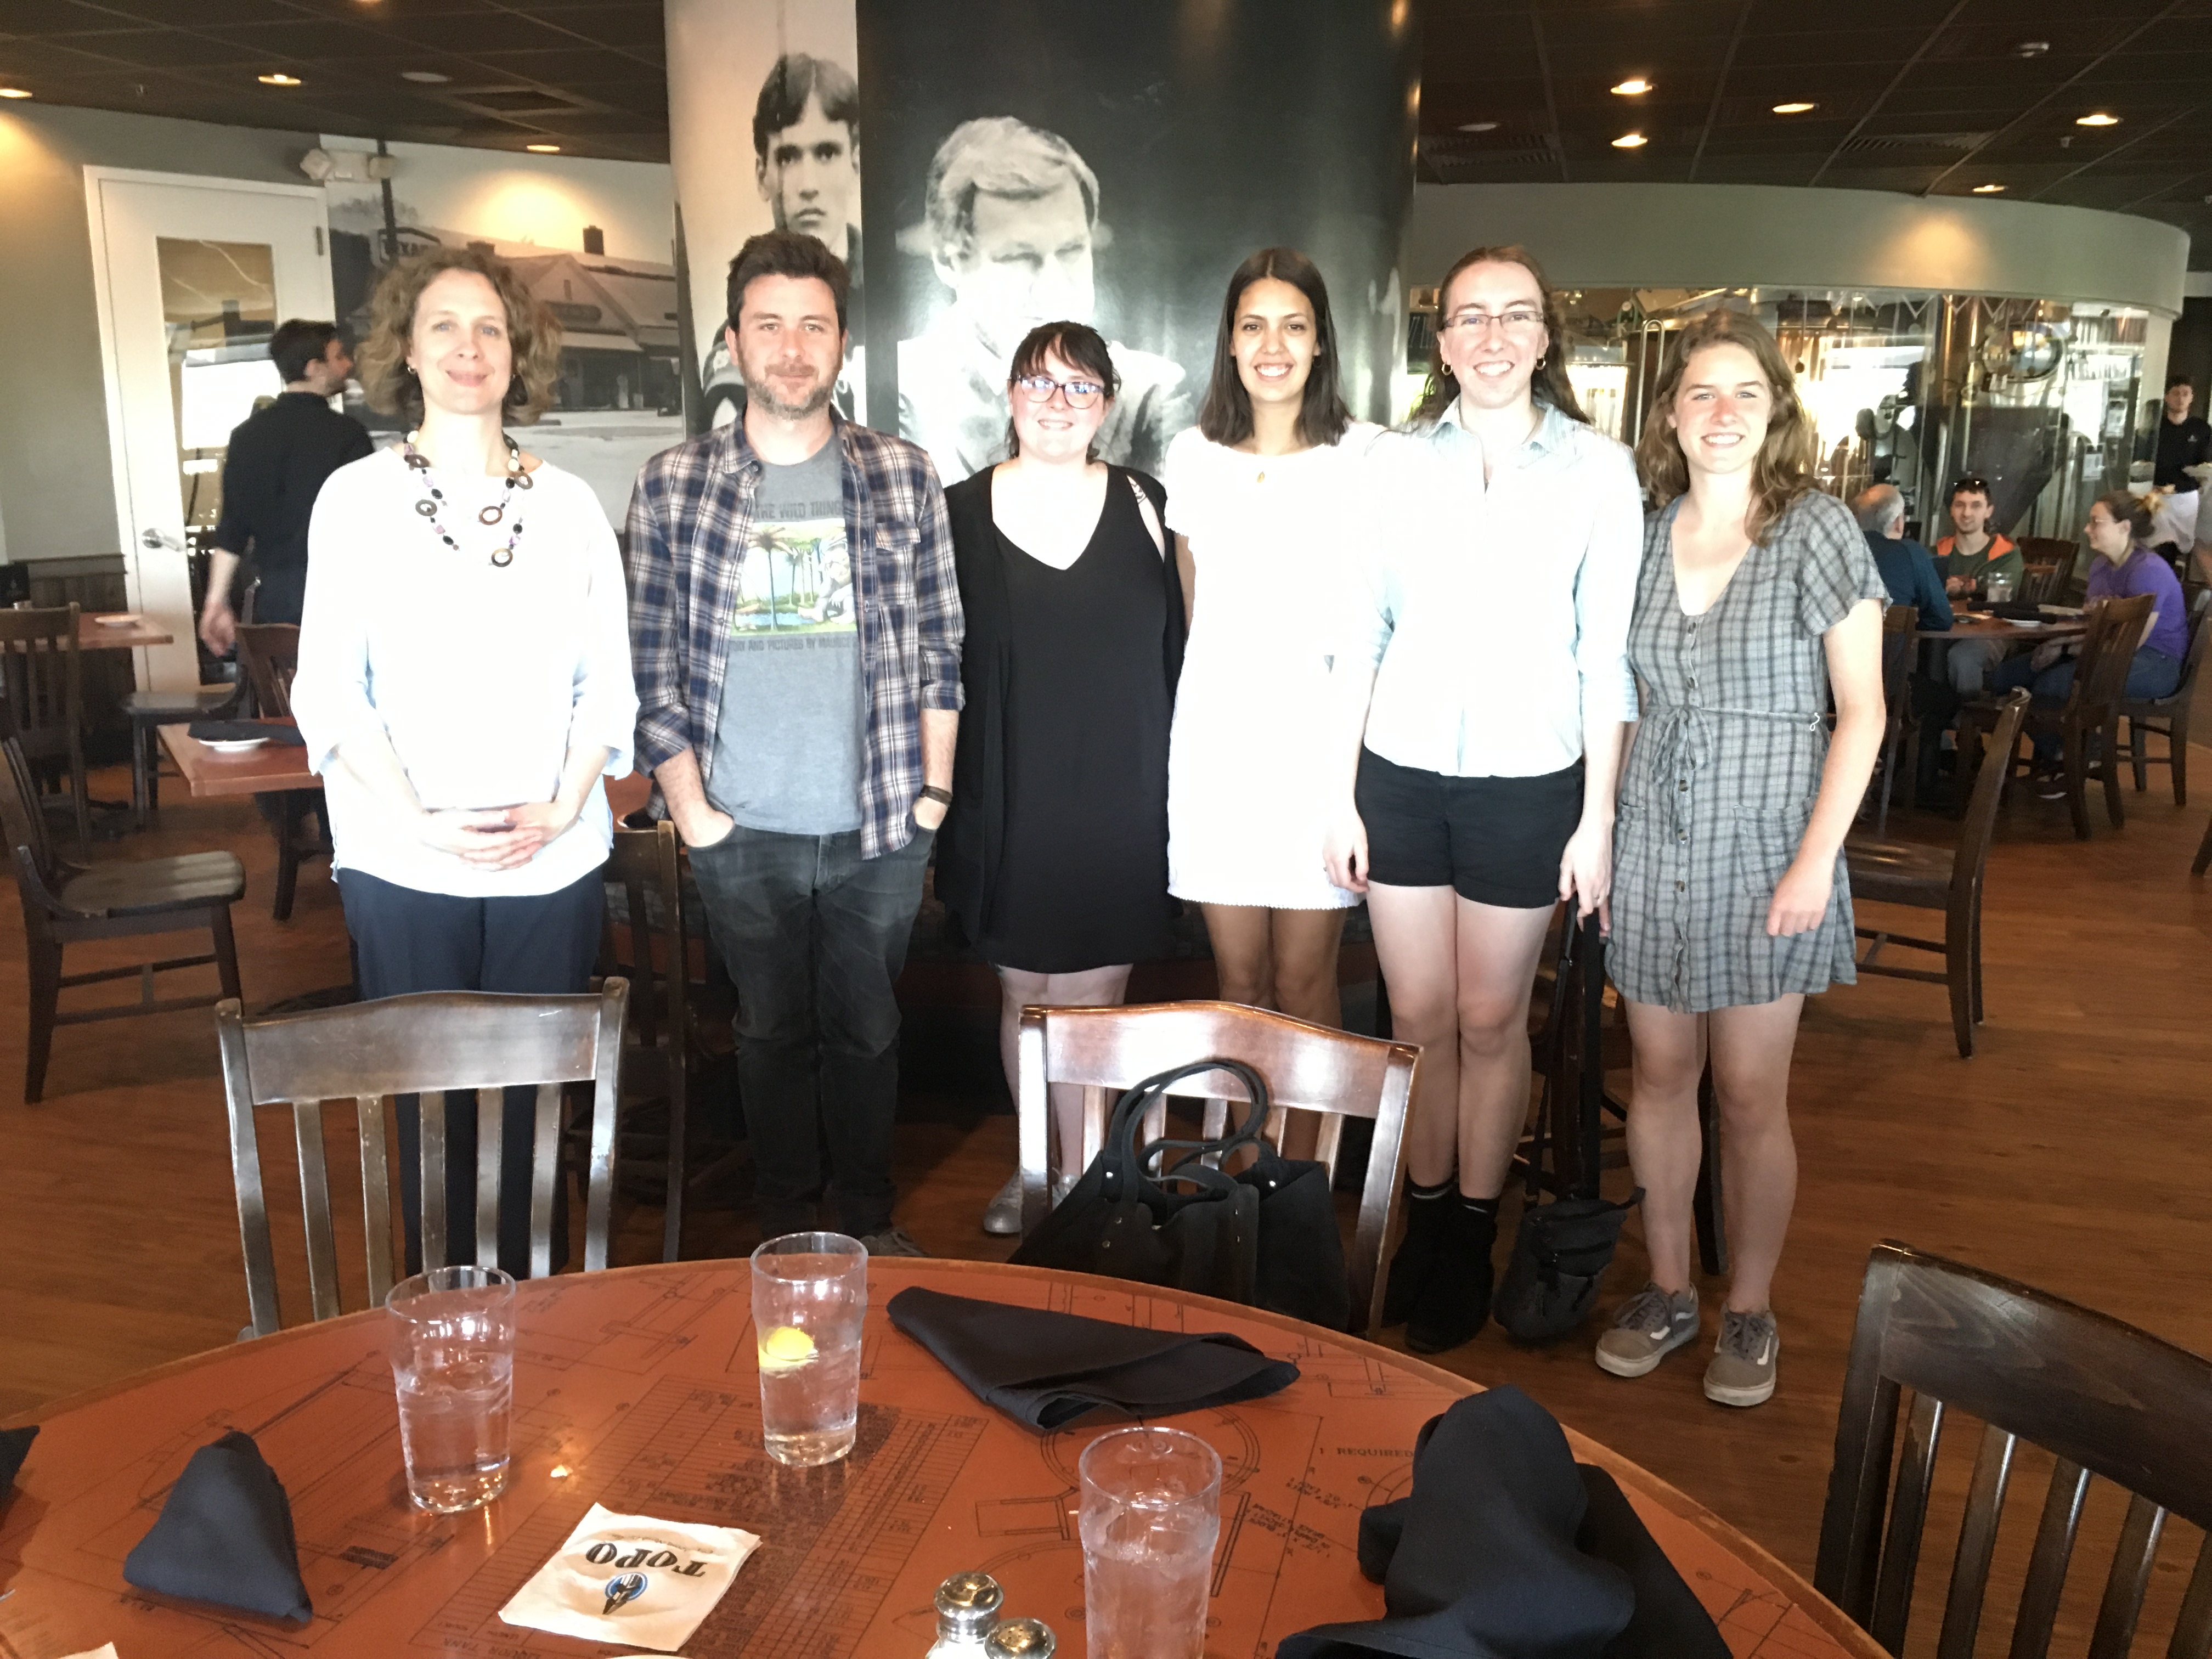 Author David Machado stands in a line of UNC staff and students smiling at the camera at a local restaurant.